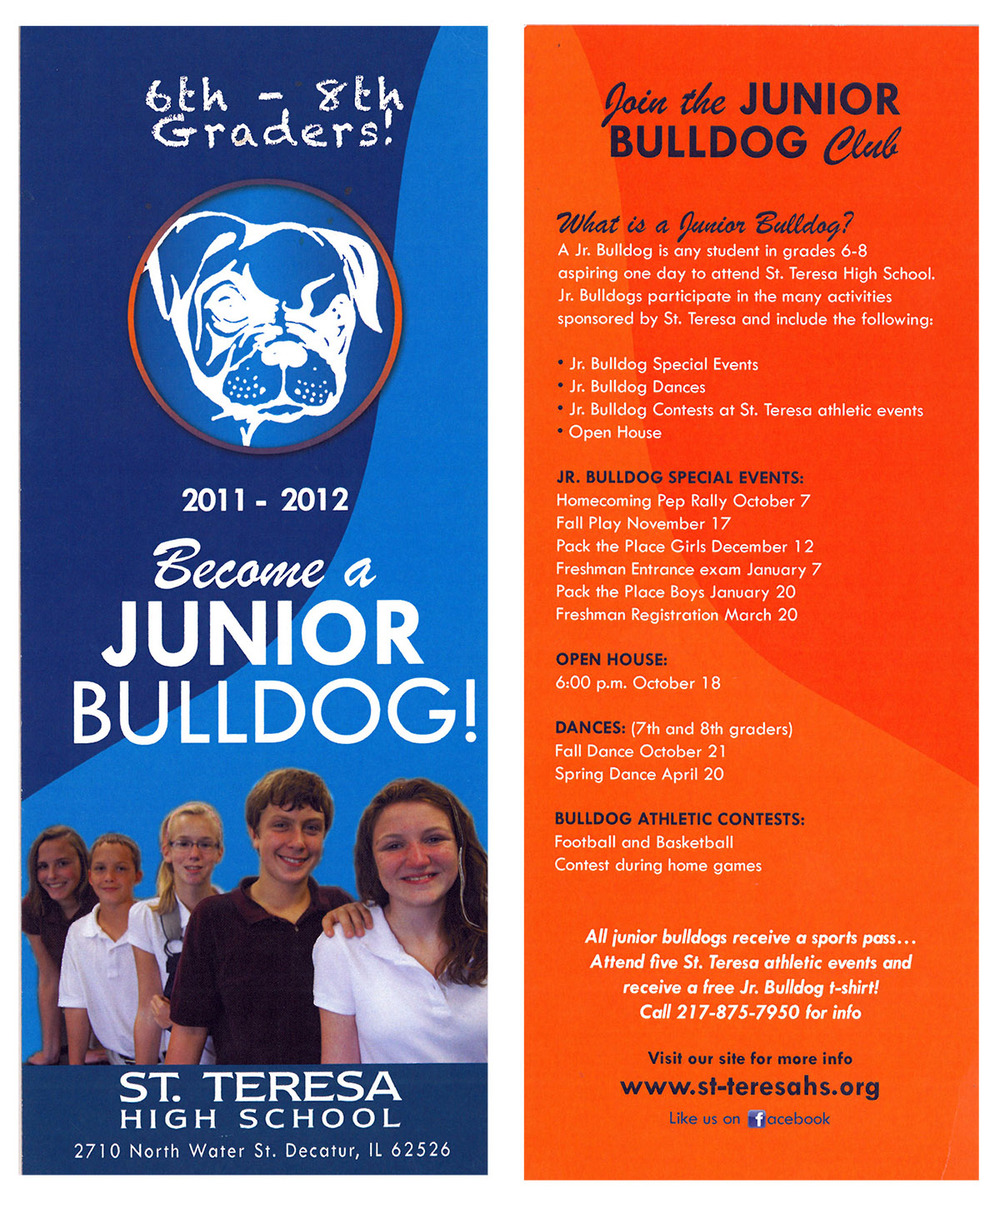 Junior Bulldog Brochure front and back